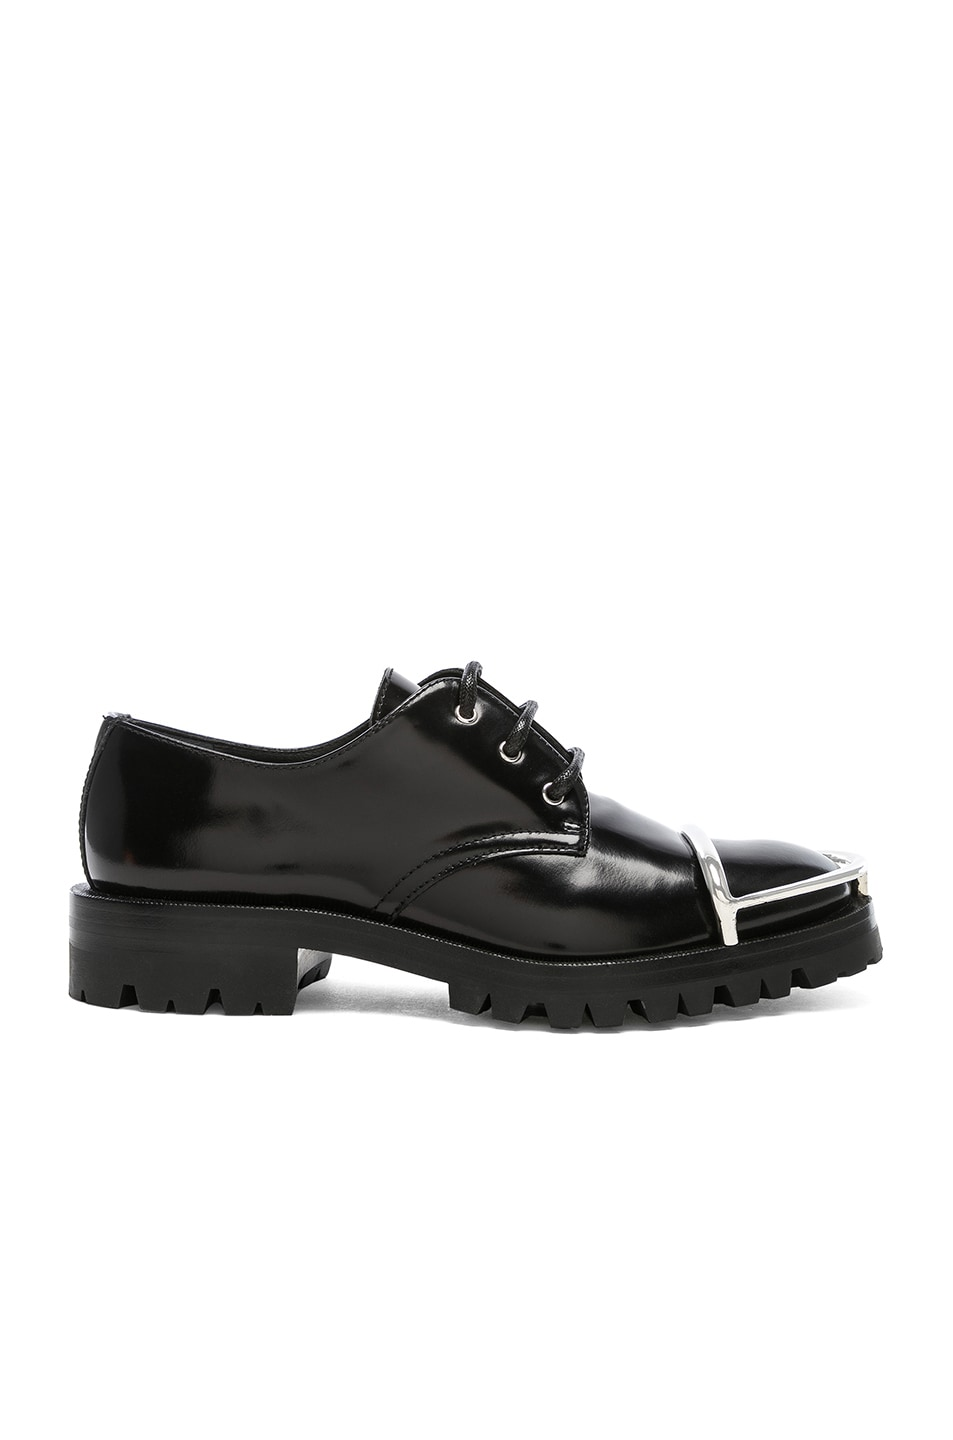 Image 1 of Alexander Wang Lyndon Low Boot in Black